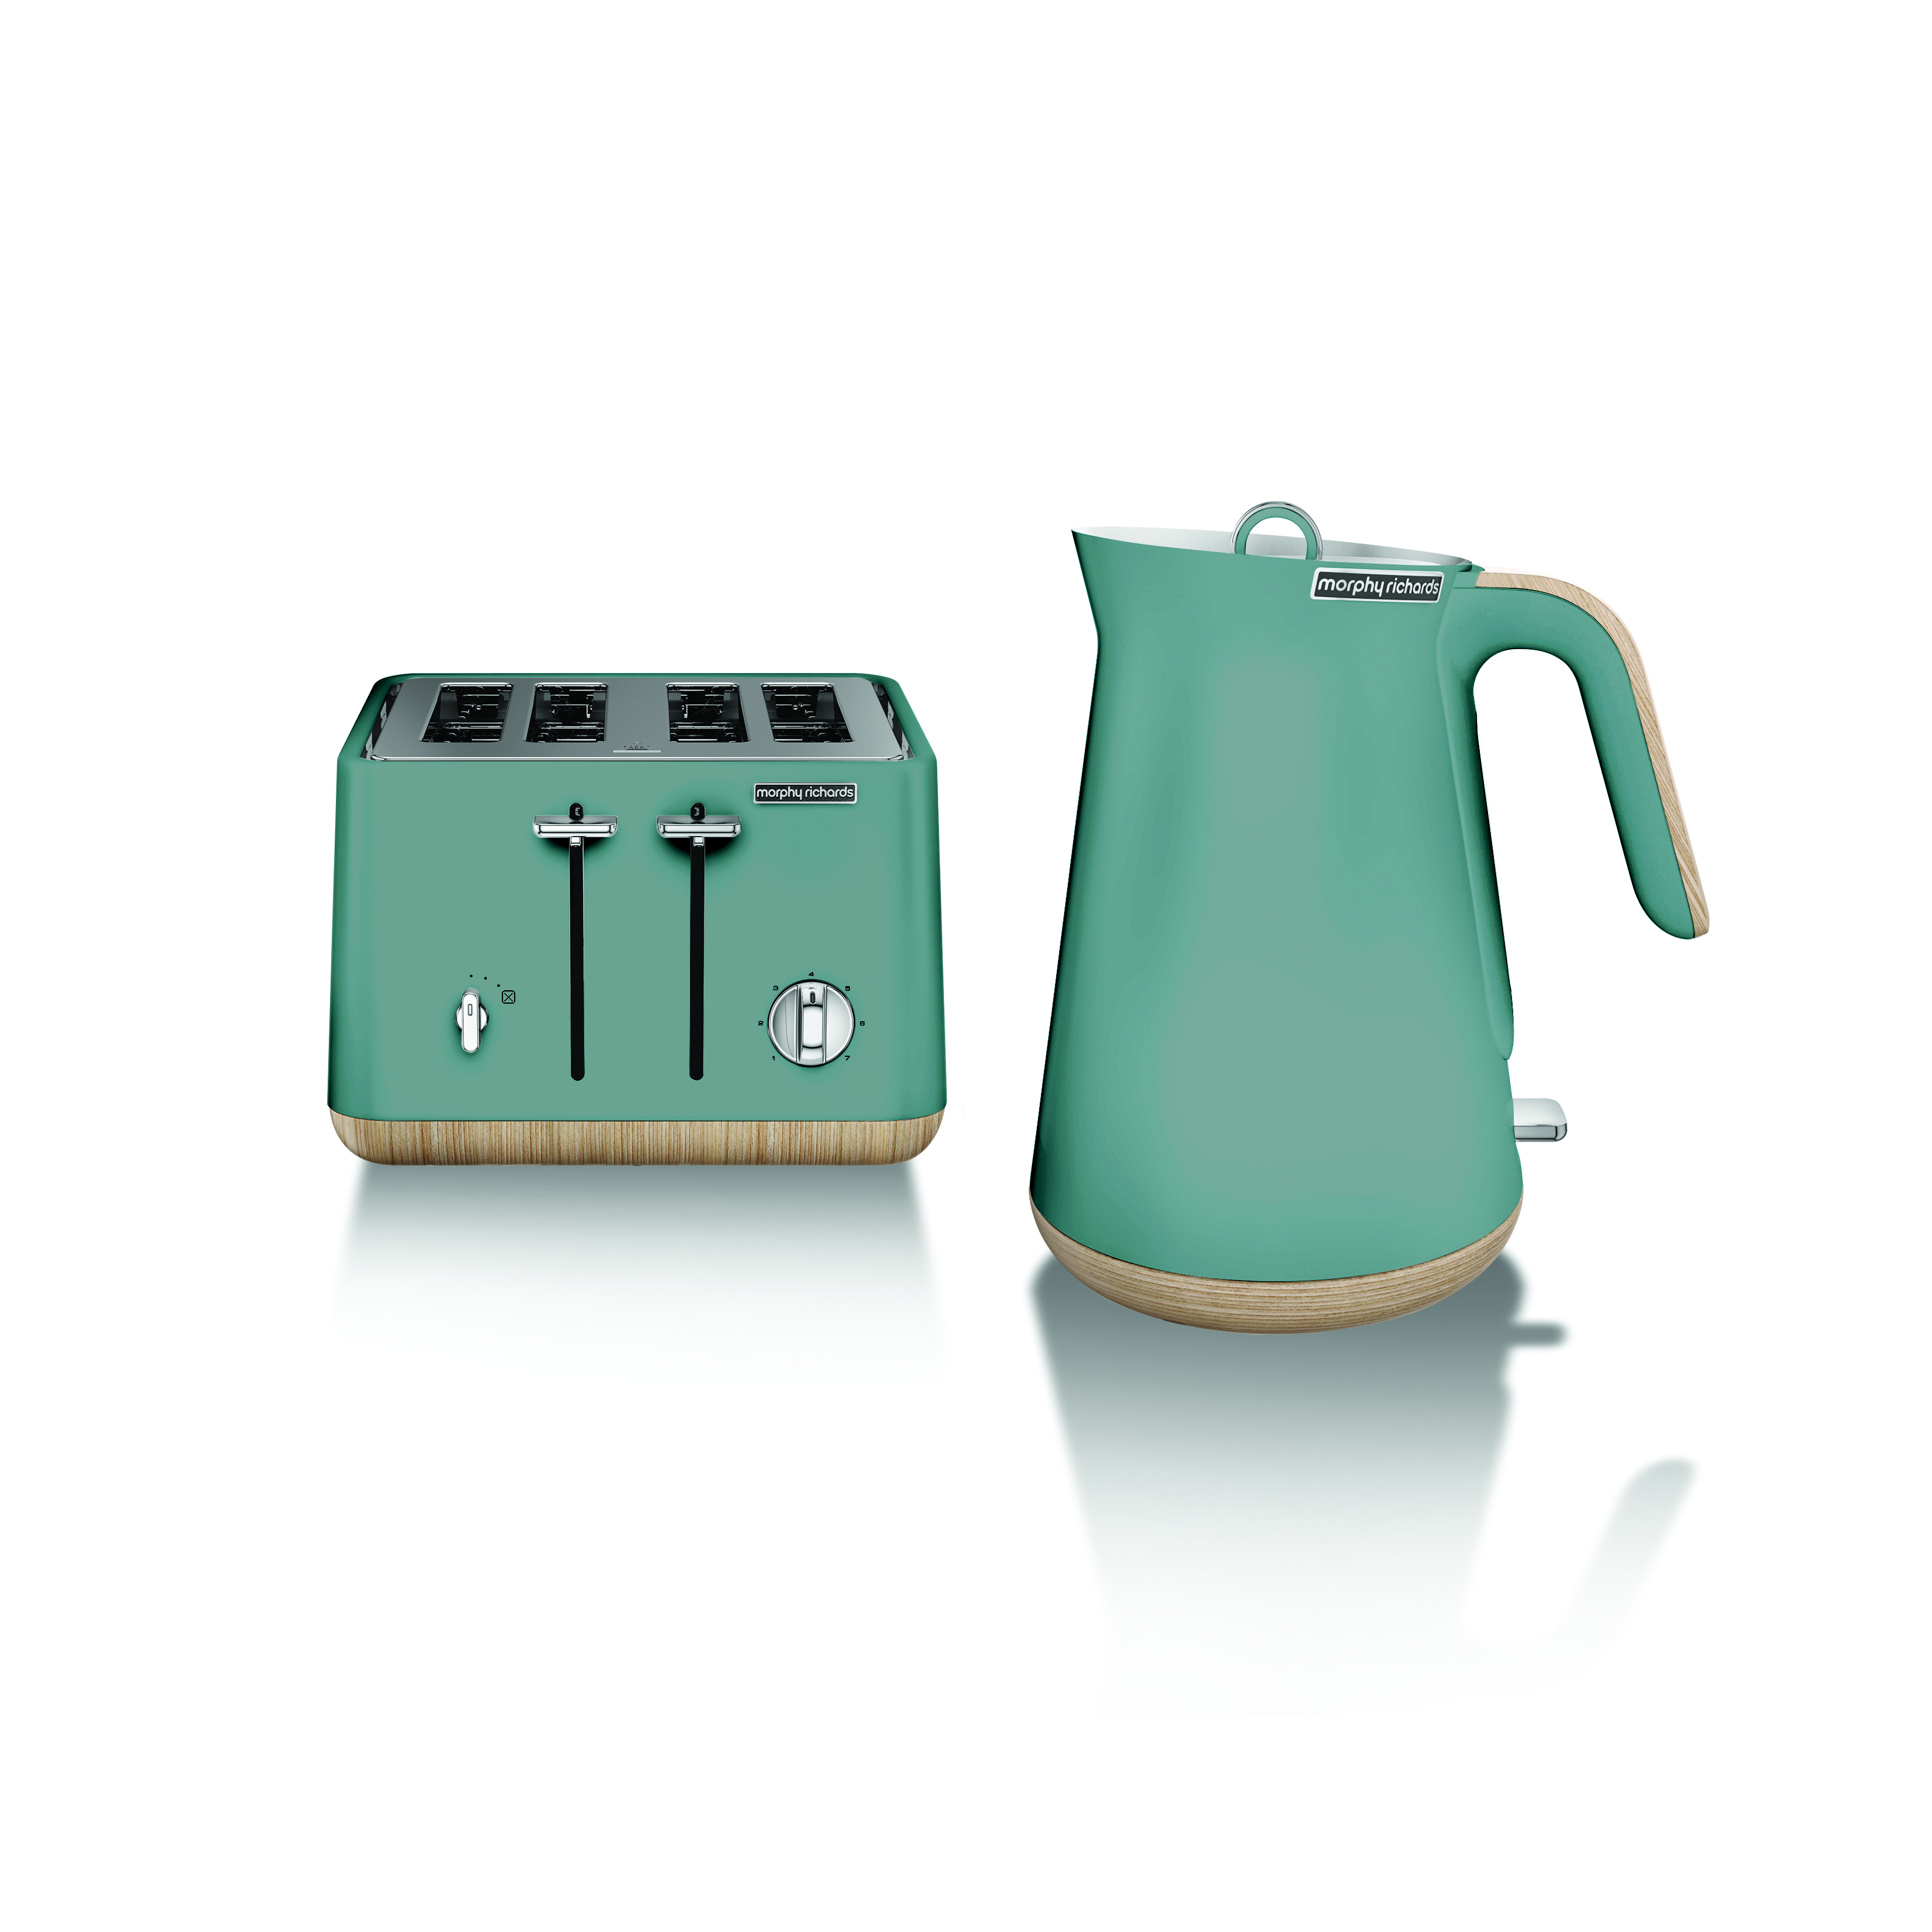 New Teal Toaster & Kettle